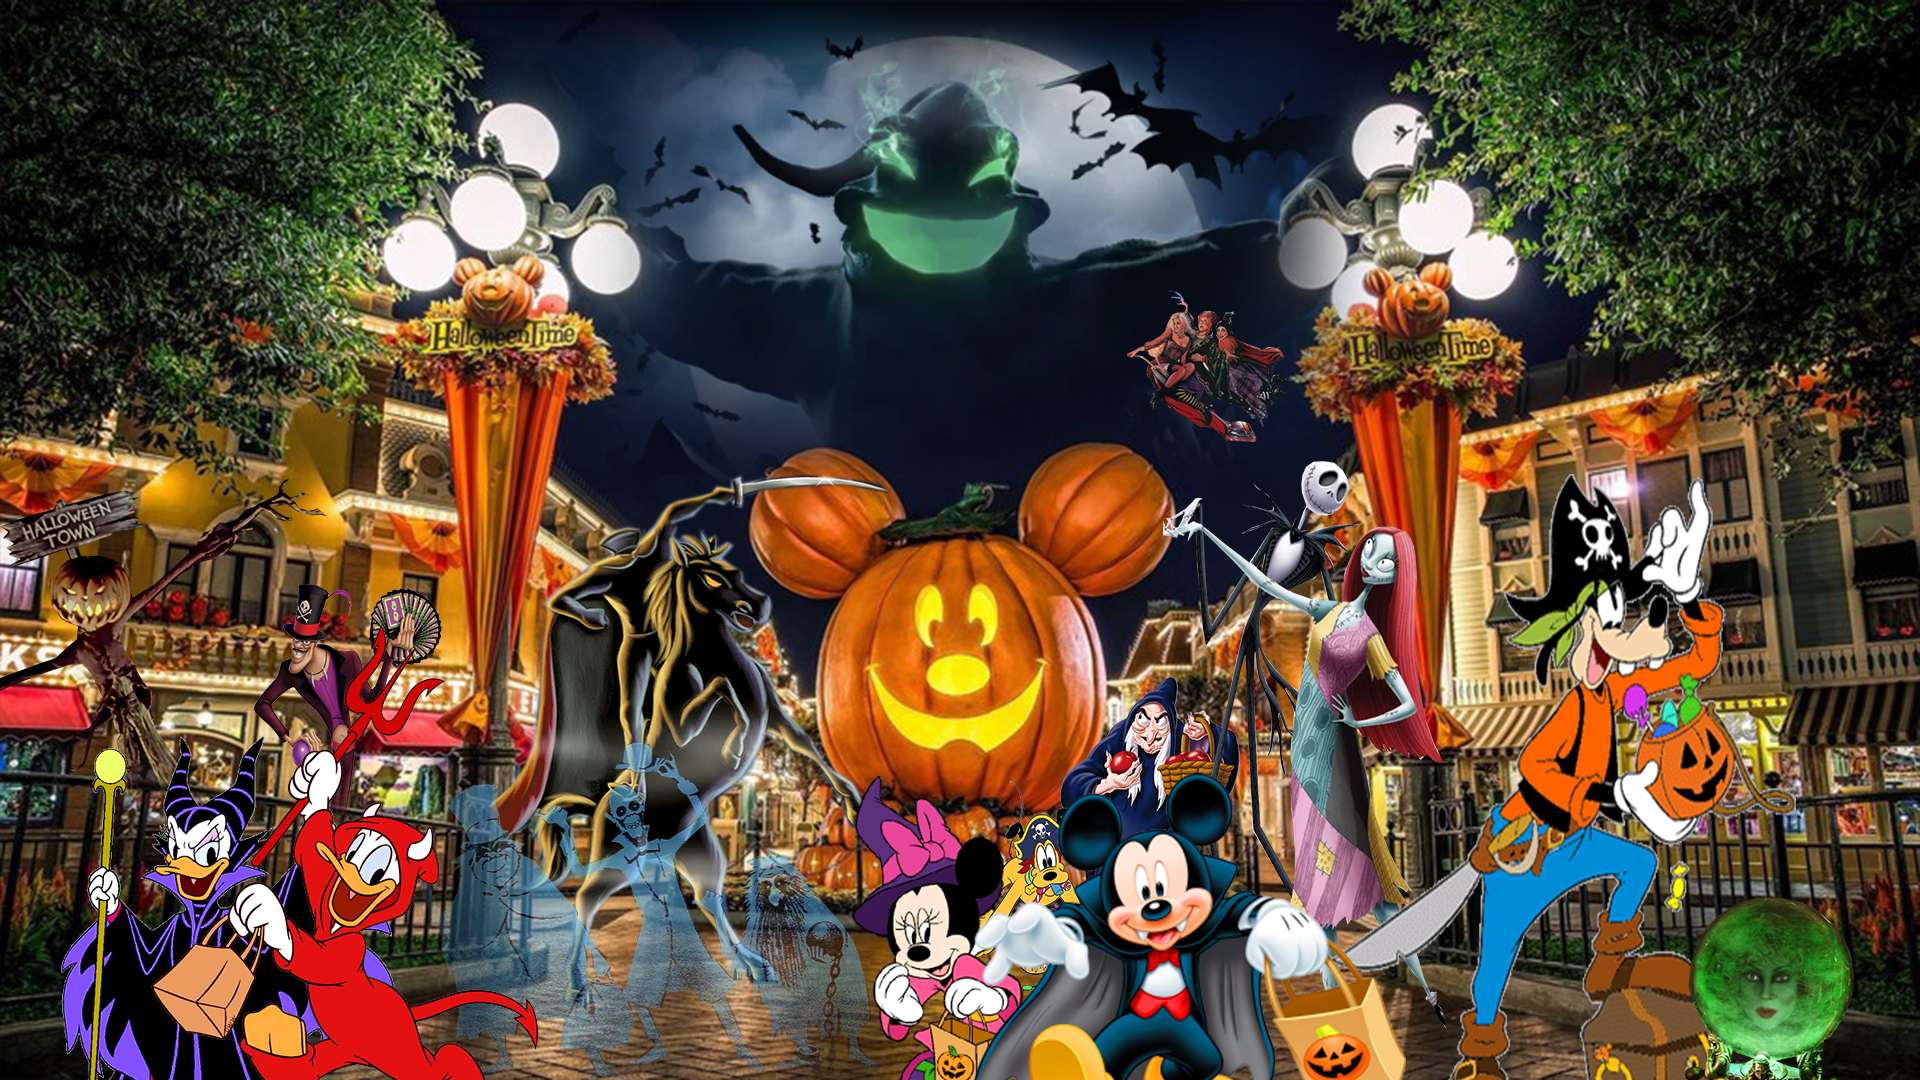 Disneyland Halloween Wallpaper by The Dark Mamba 995 on